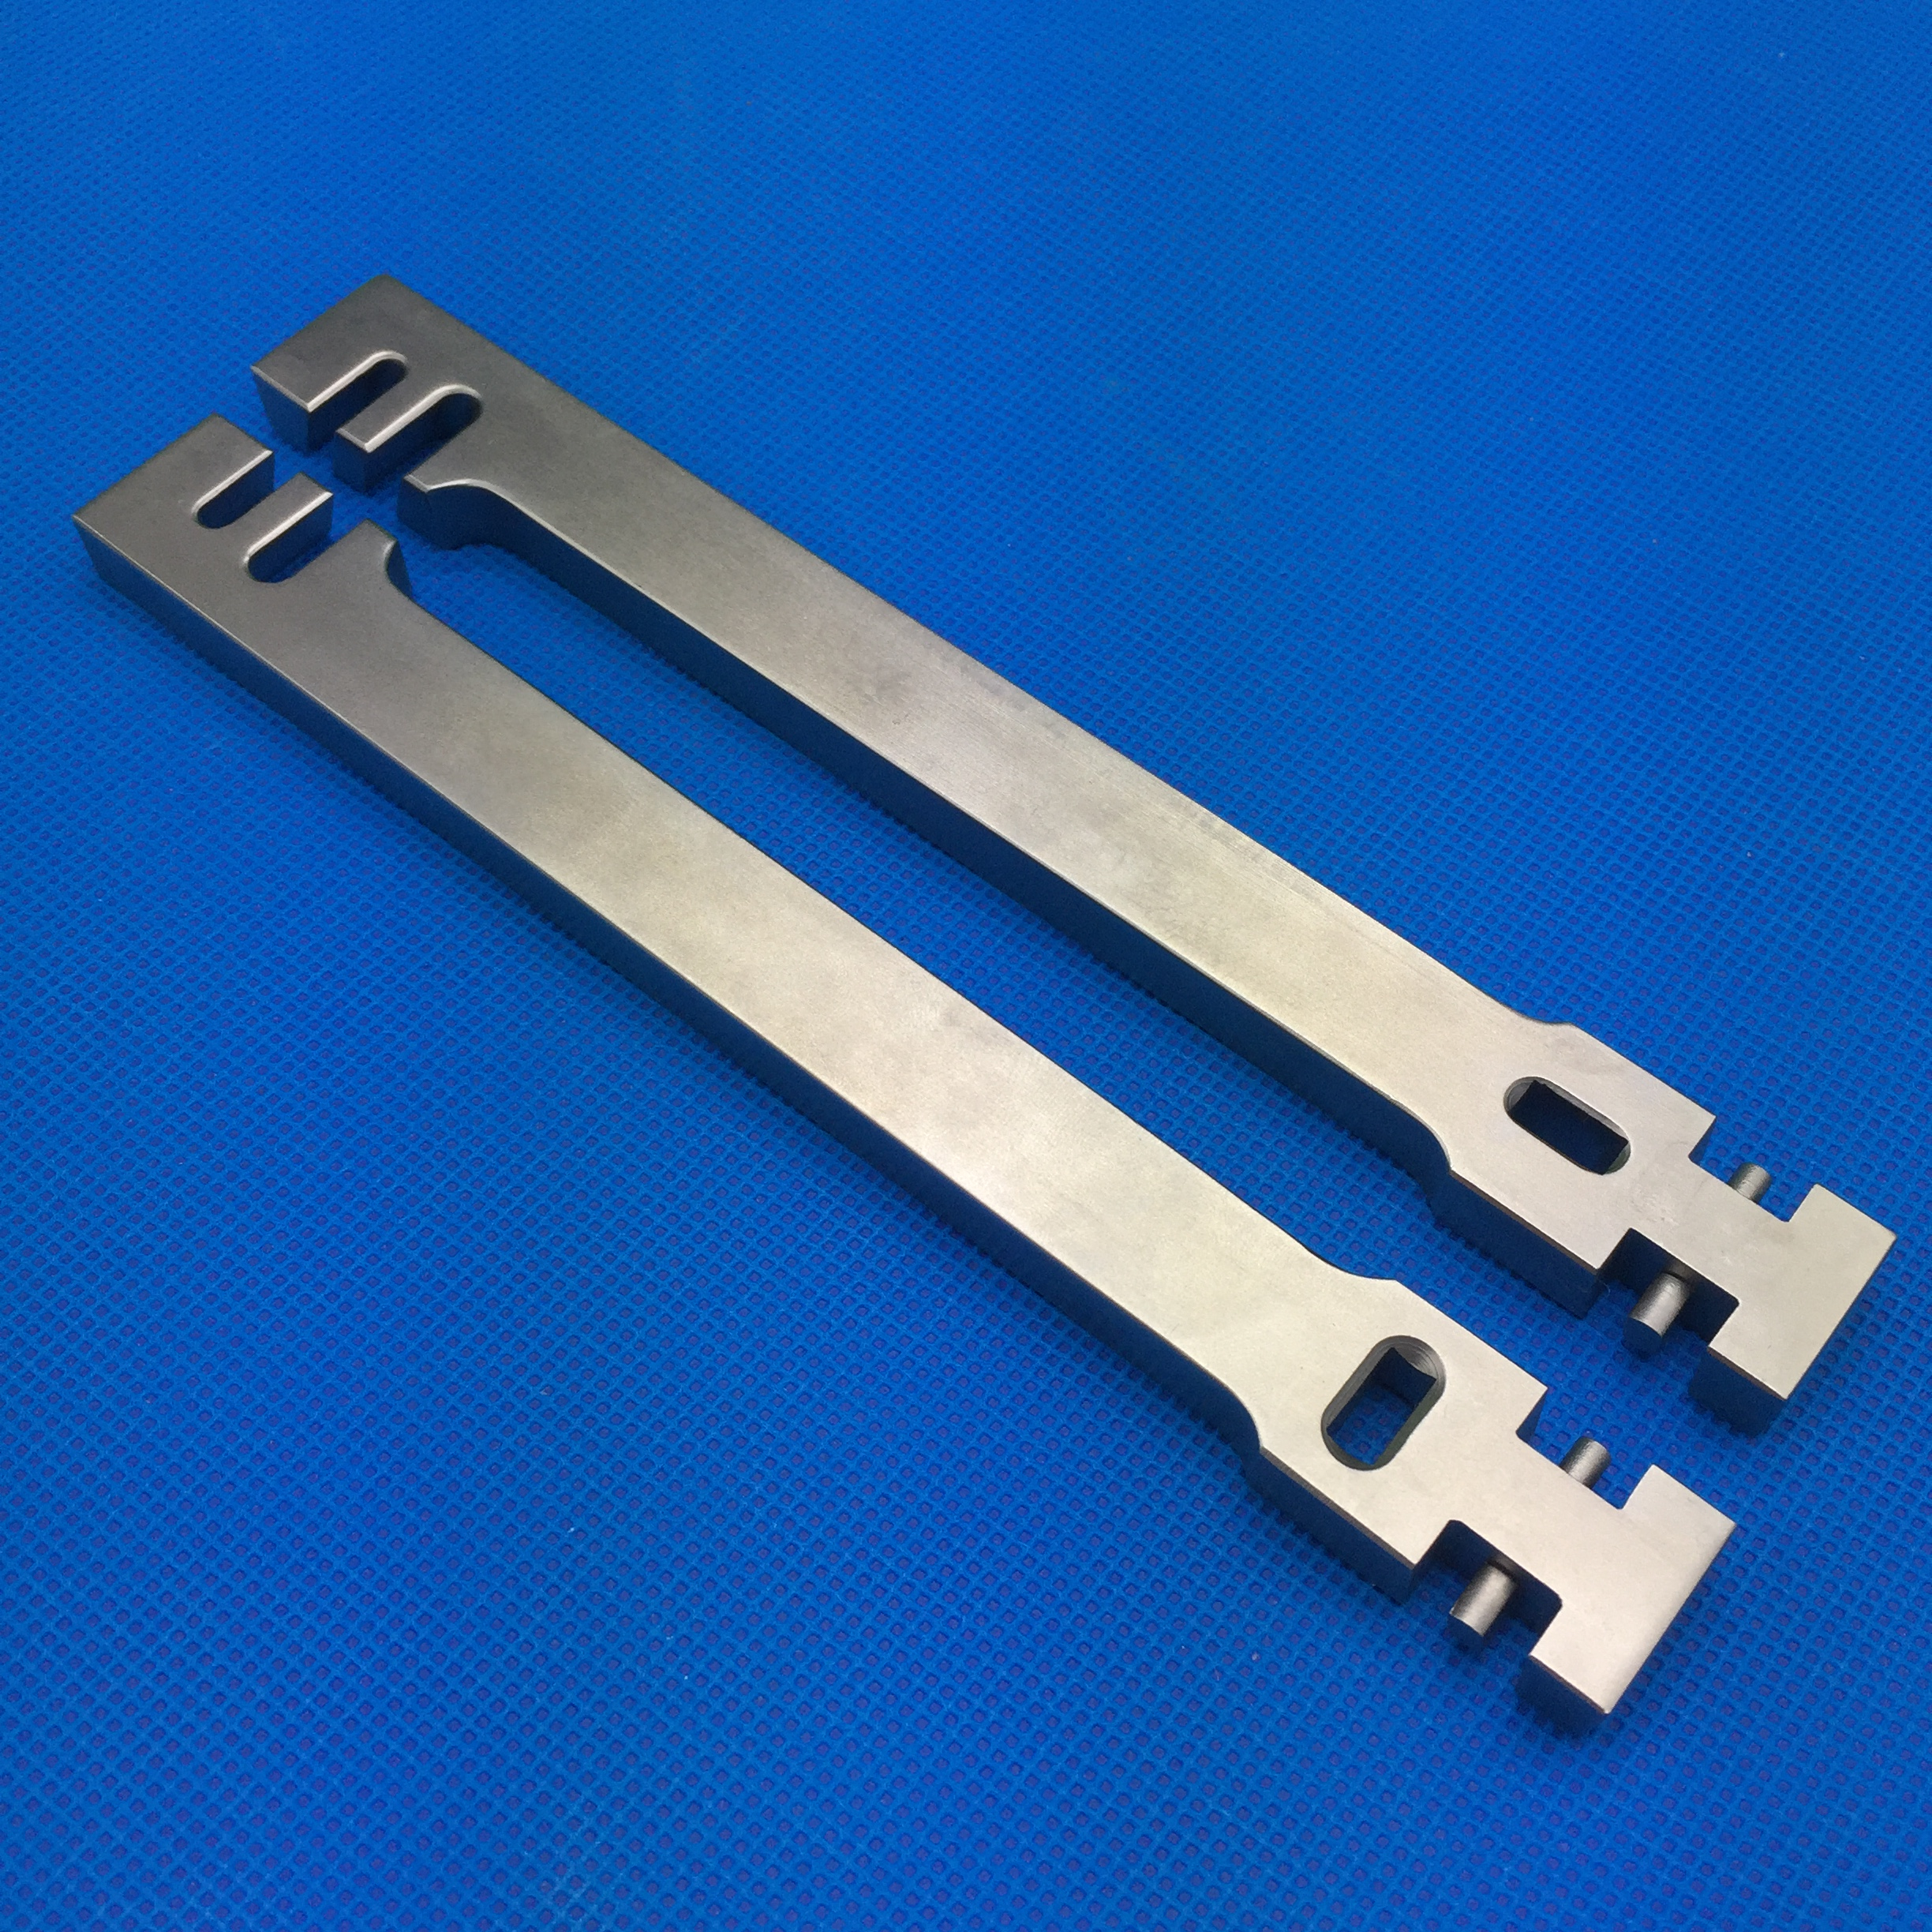 2pc/set New Steel Plate Bender Veterinary Orthopedics Surgical Instruments